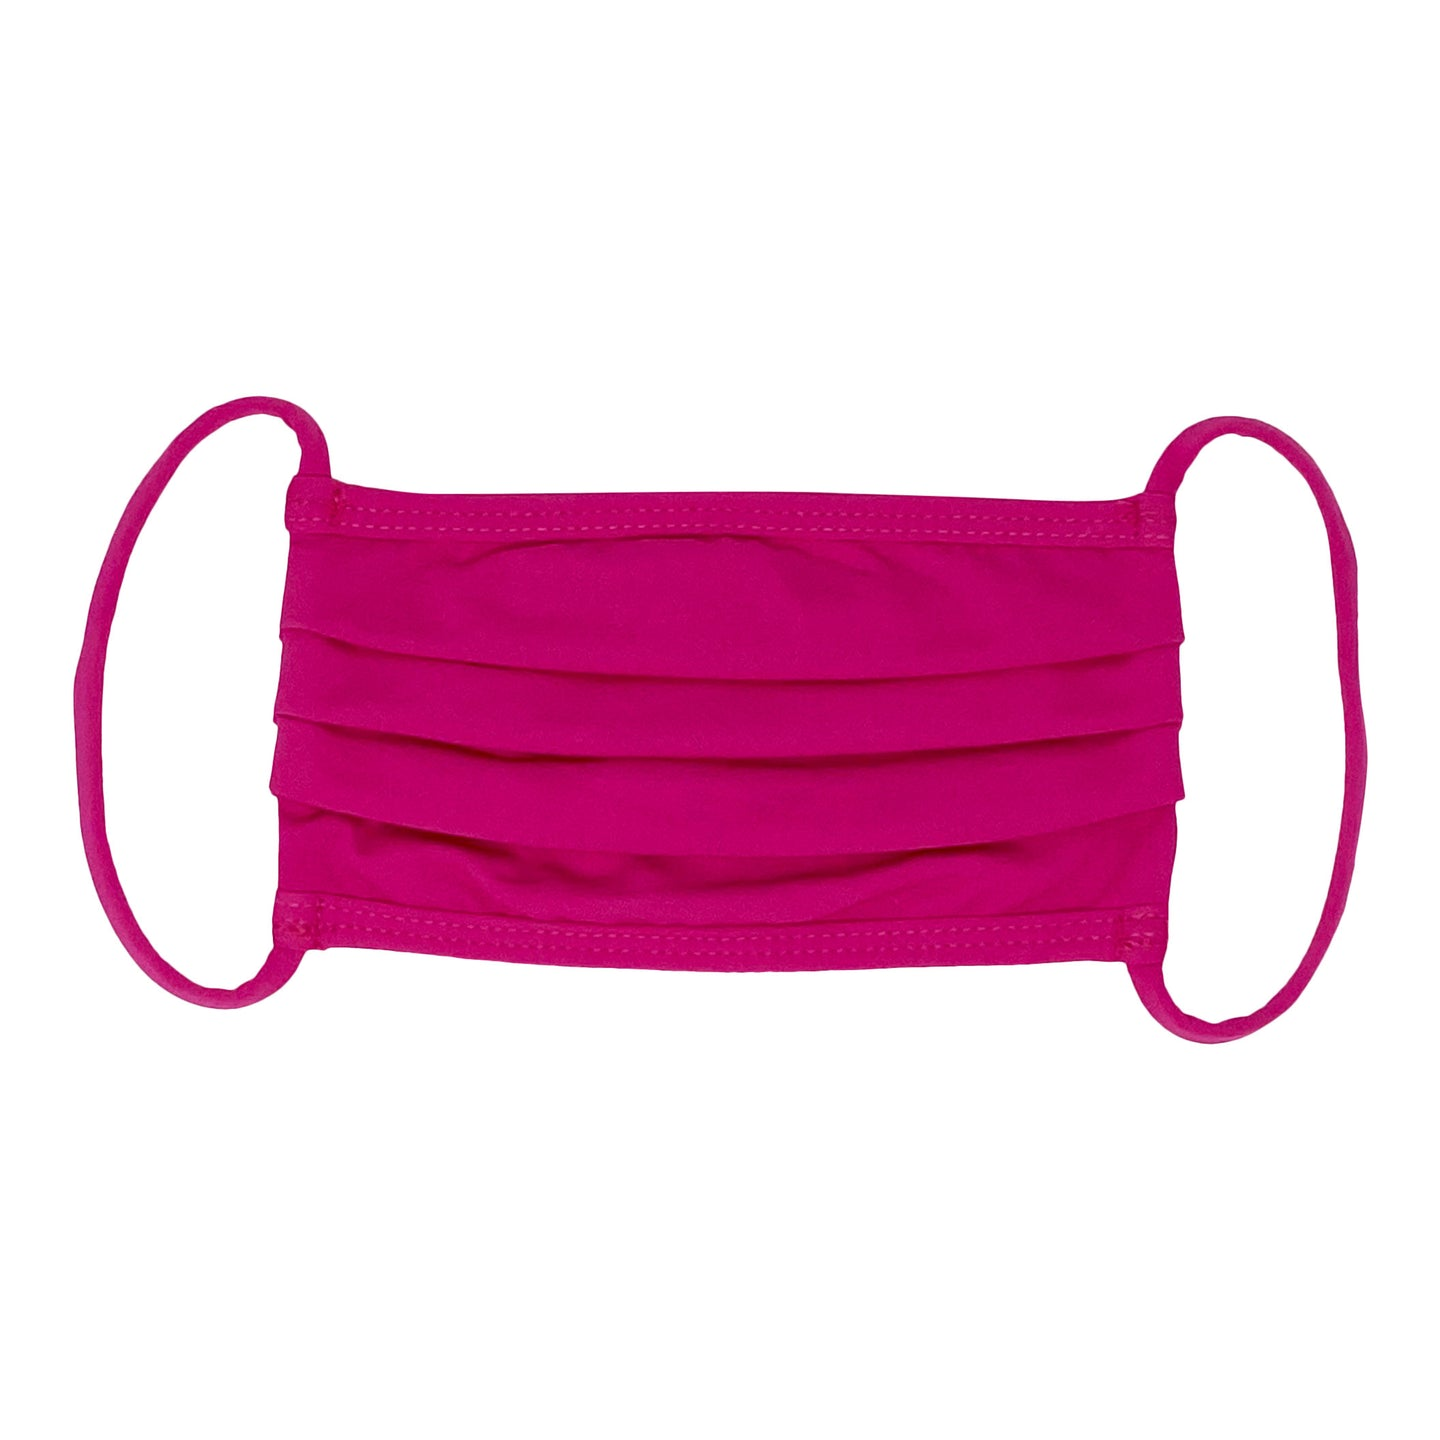 Adult Mask in Fuchsia